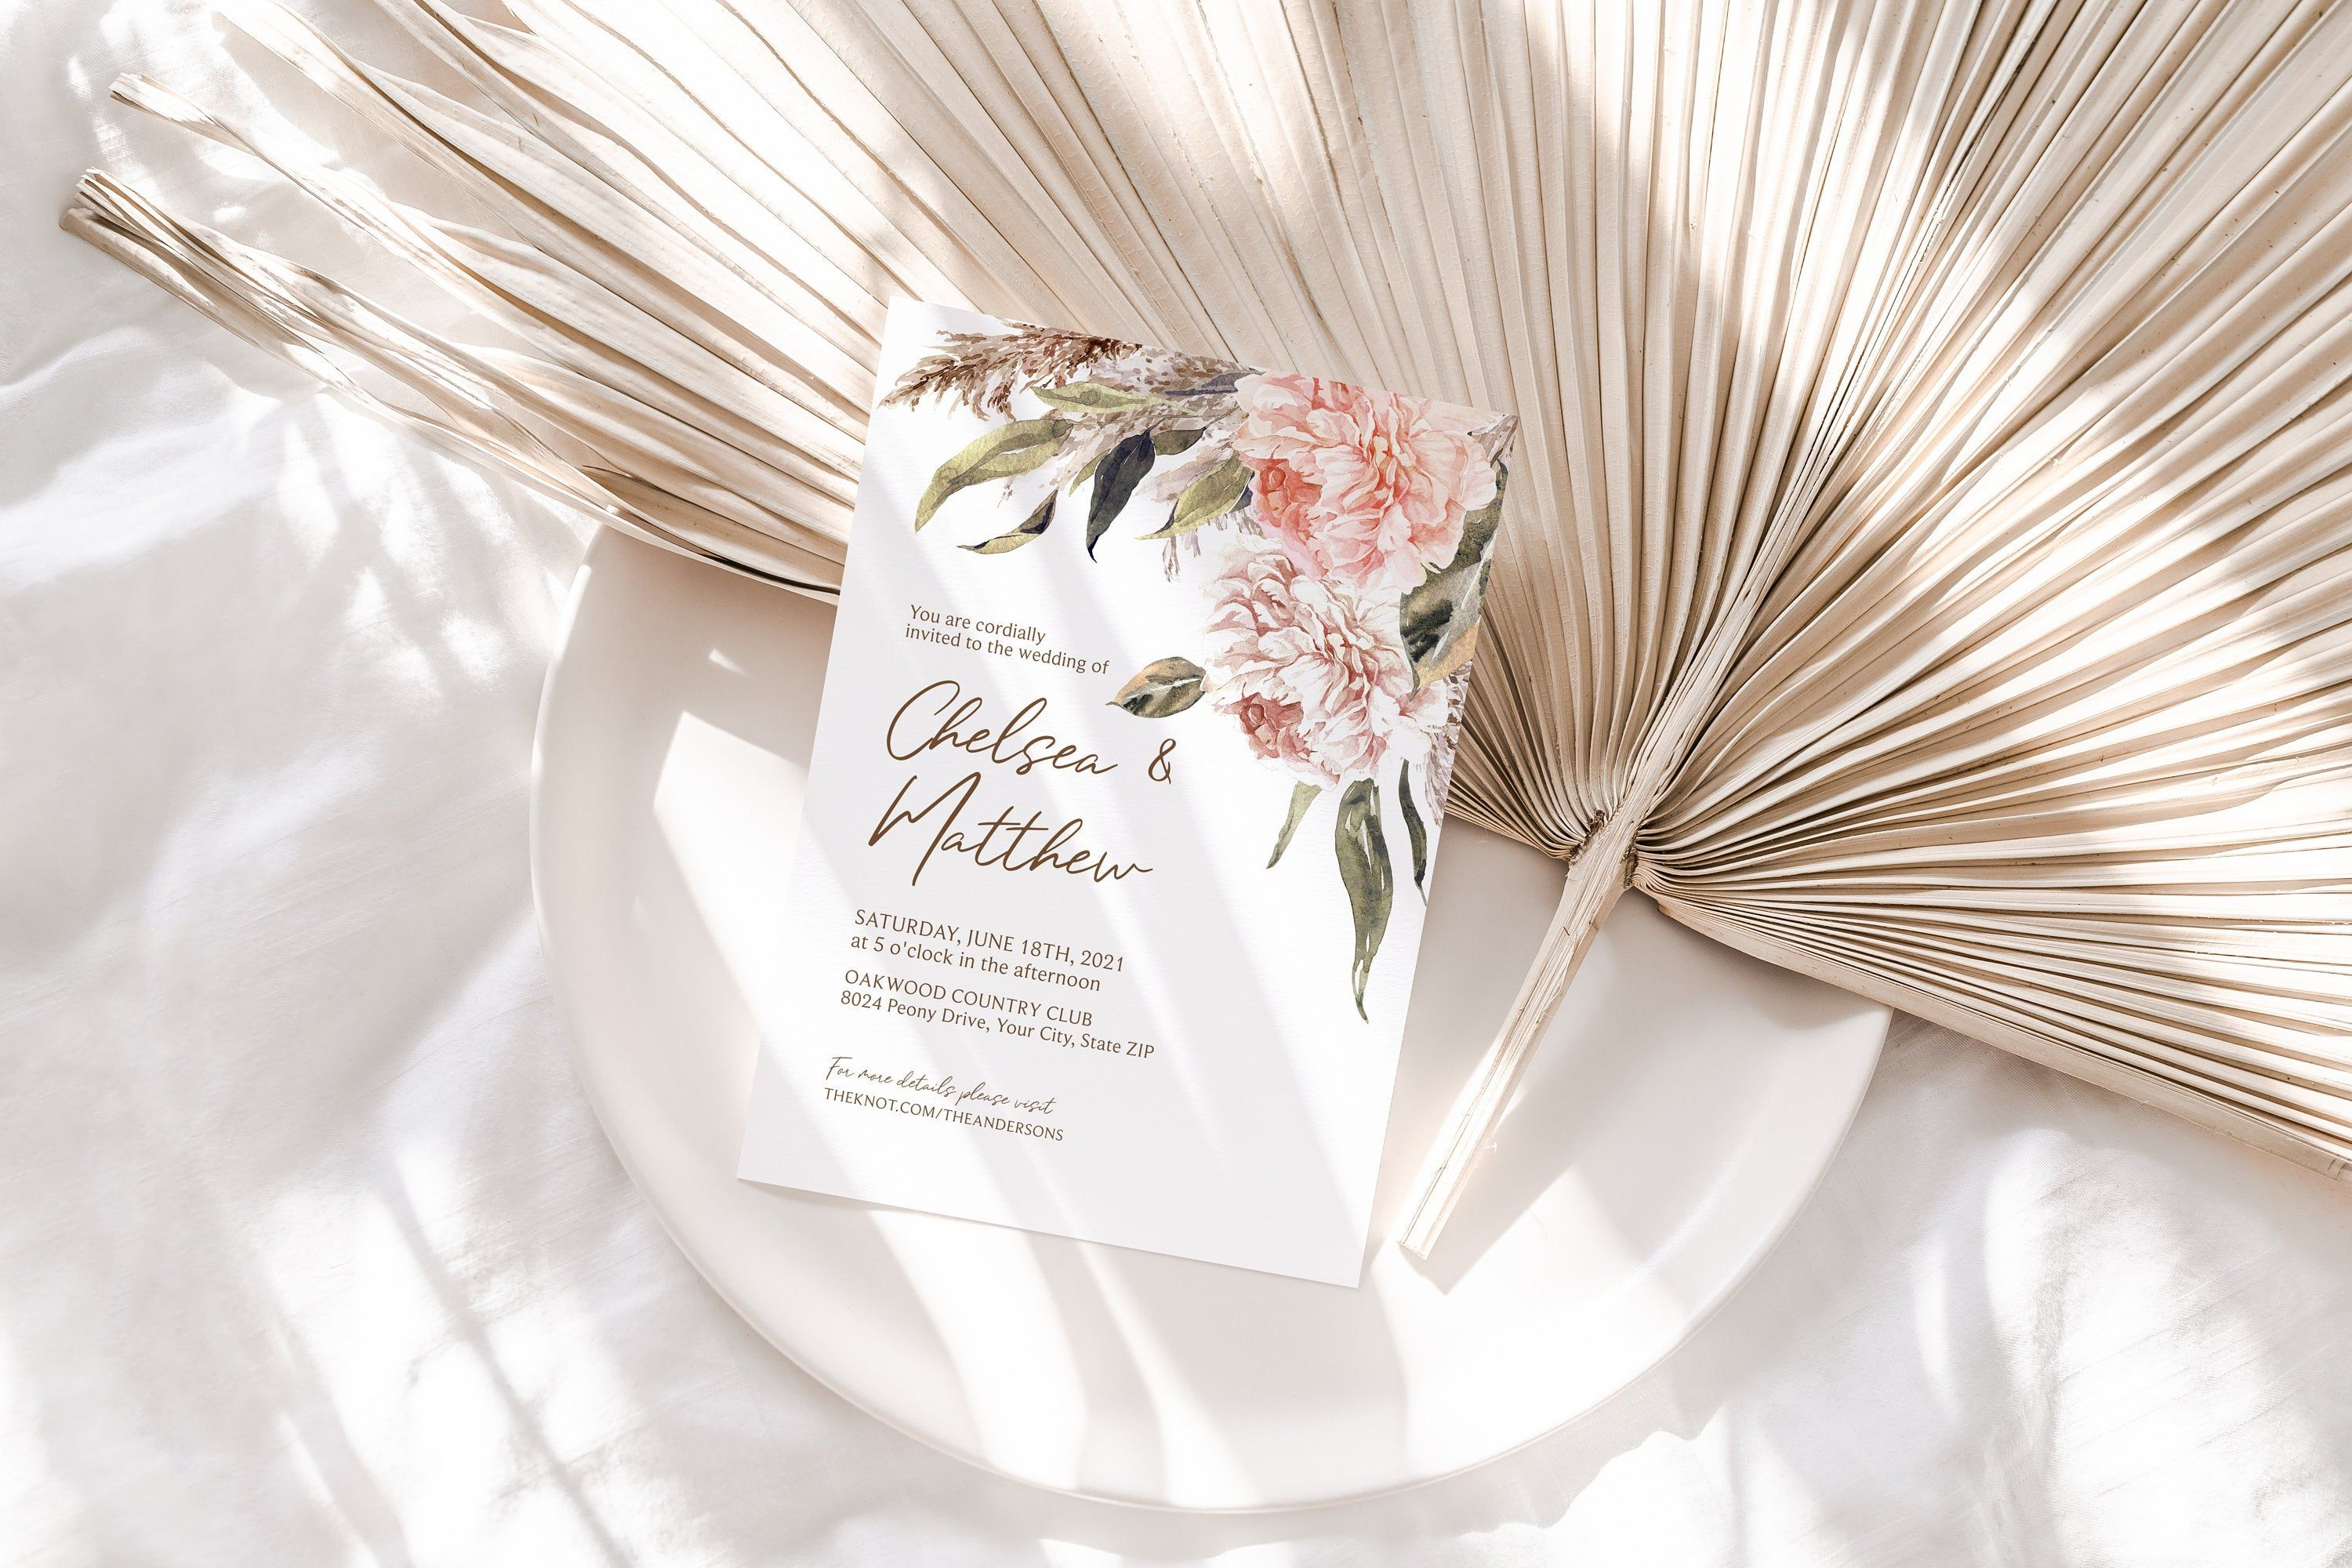 Blush Muted Tones Geometric Wedding Announcement Editable Corjl Template 113 Pampas Grass and Pink Rose Wedding Save The Date Card